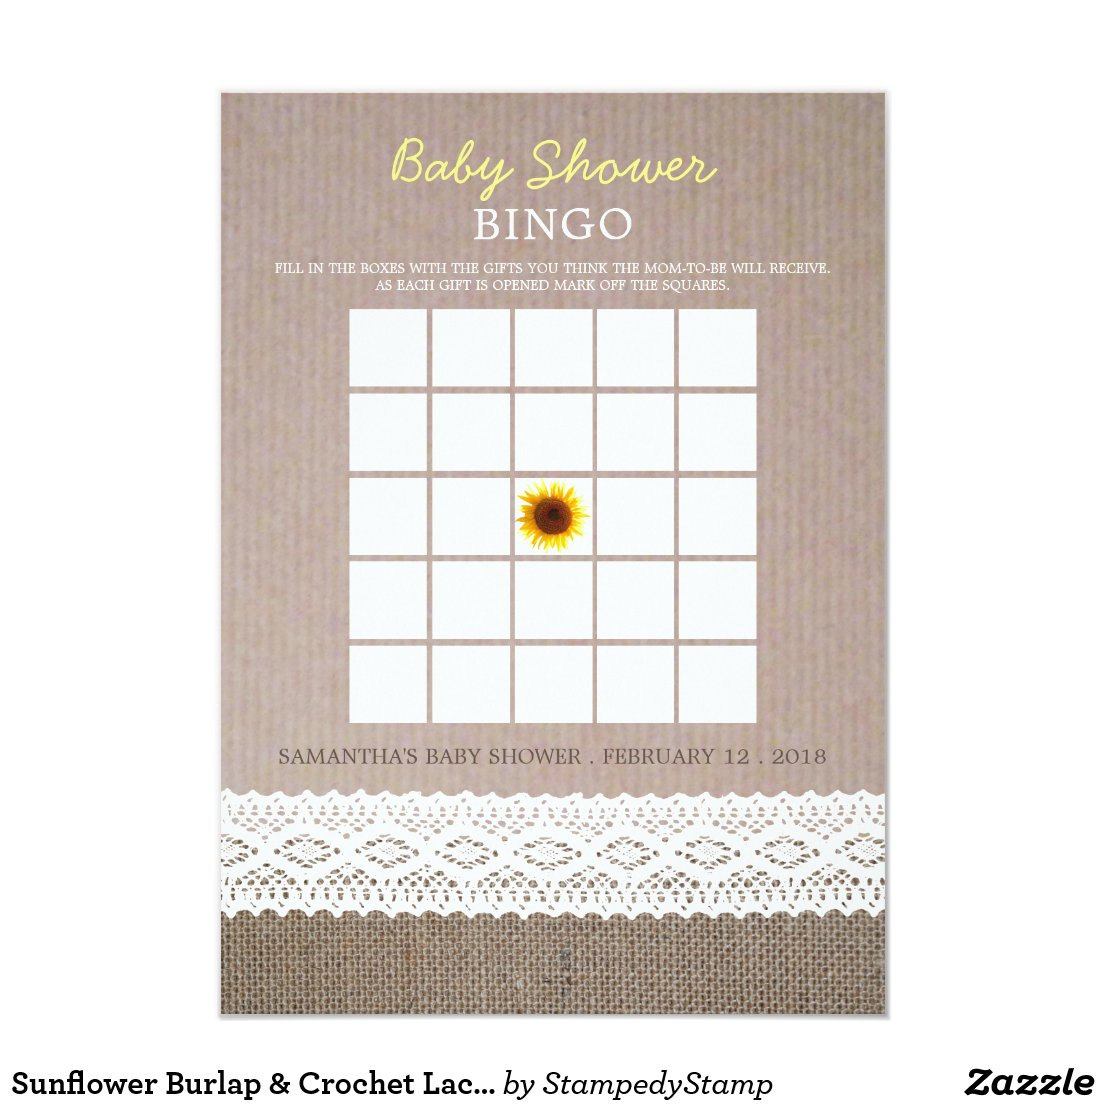 Sunflower Burlap & Crochet Lace Baby Shower Bingo